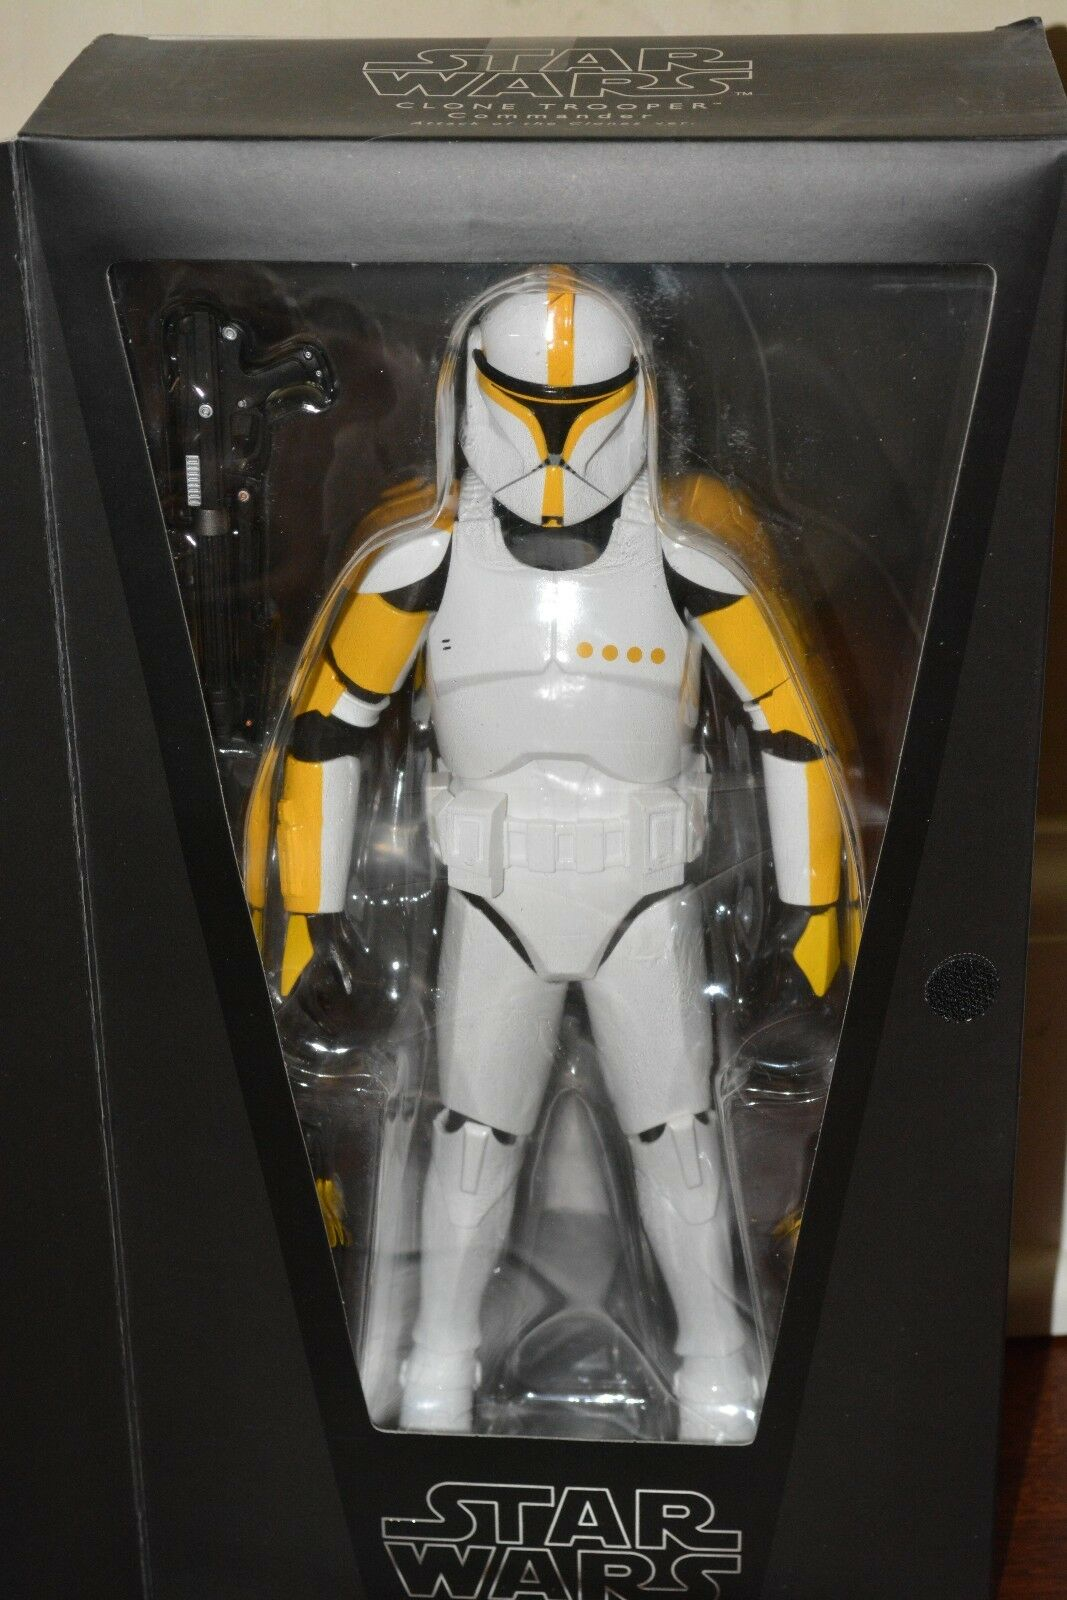 Medicom Star Wars Real Action Heroes 1/6 Scale Clone Trooper Commander AOTC, NIB